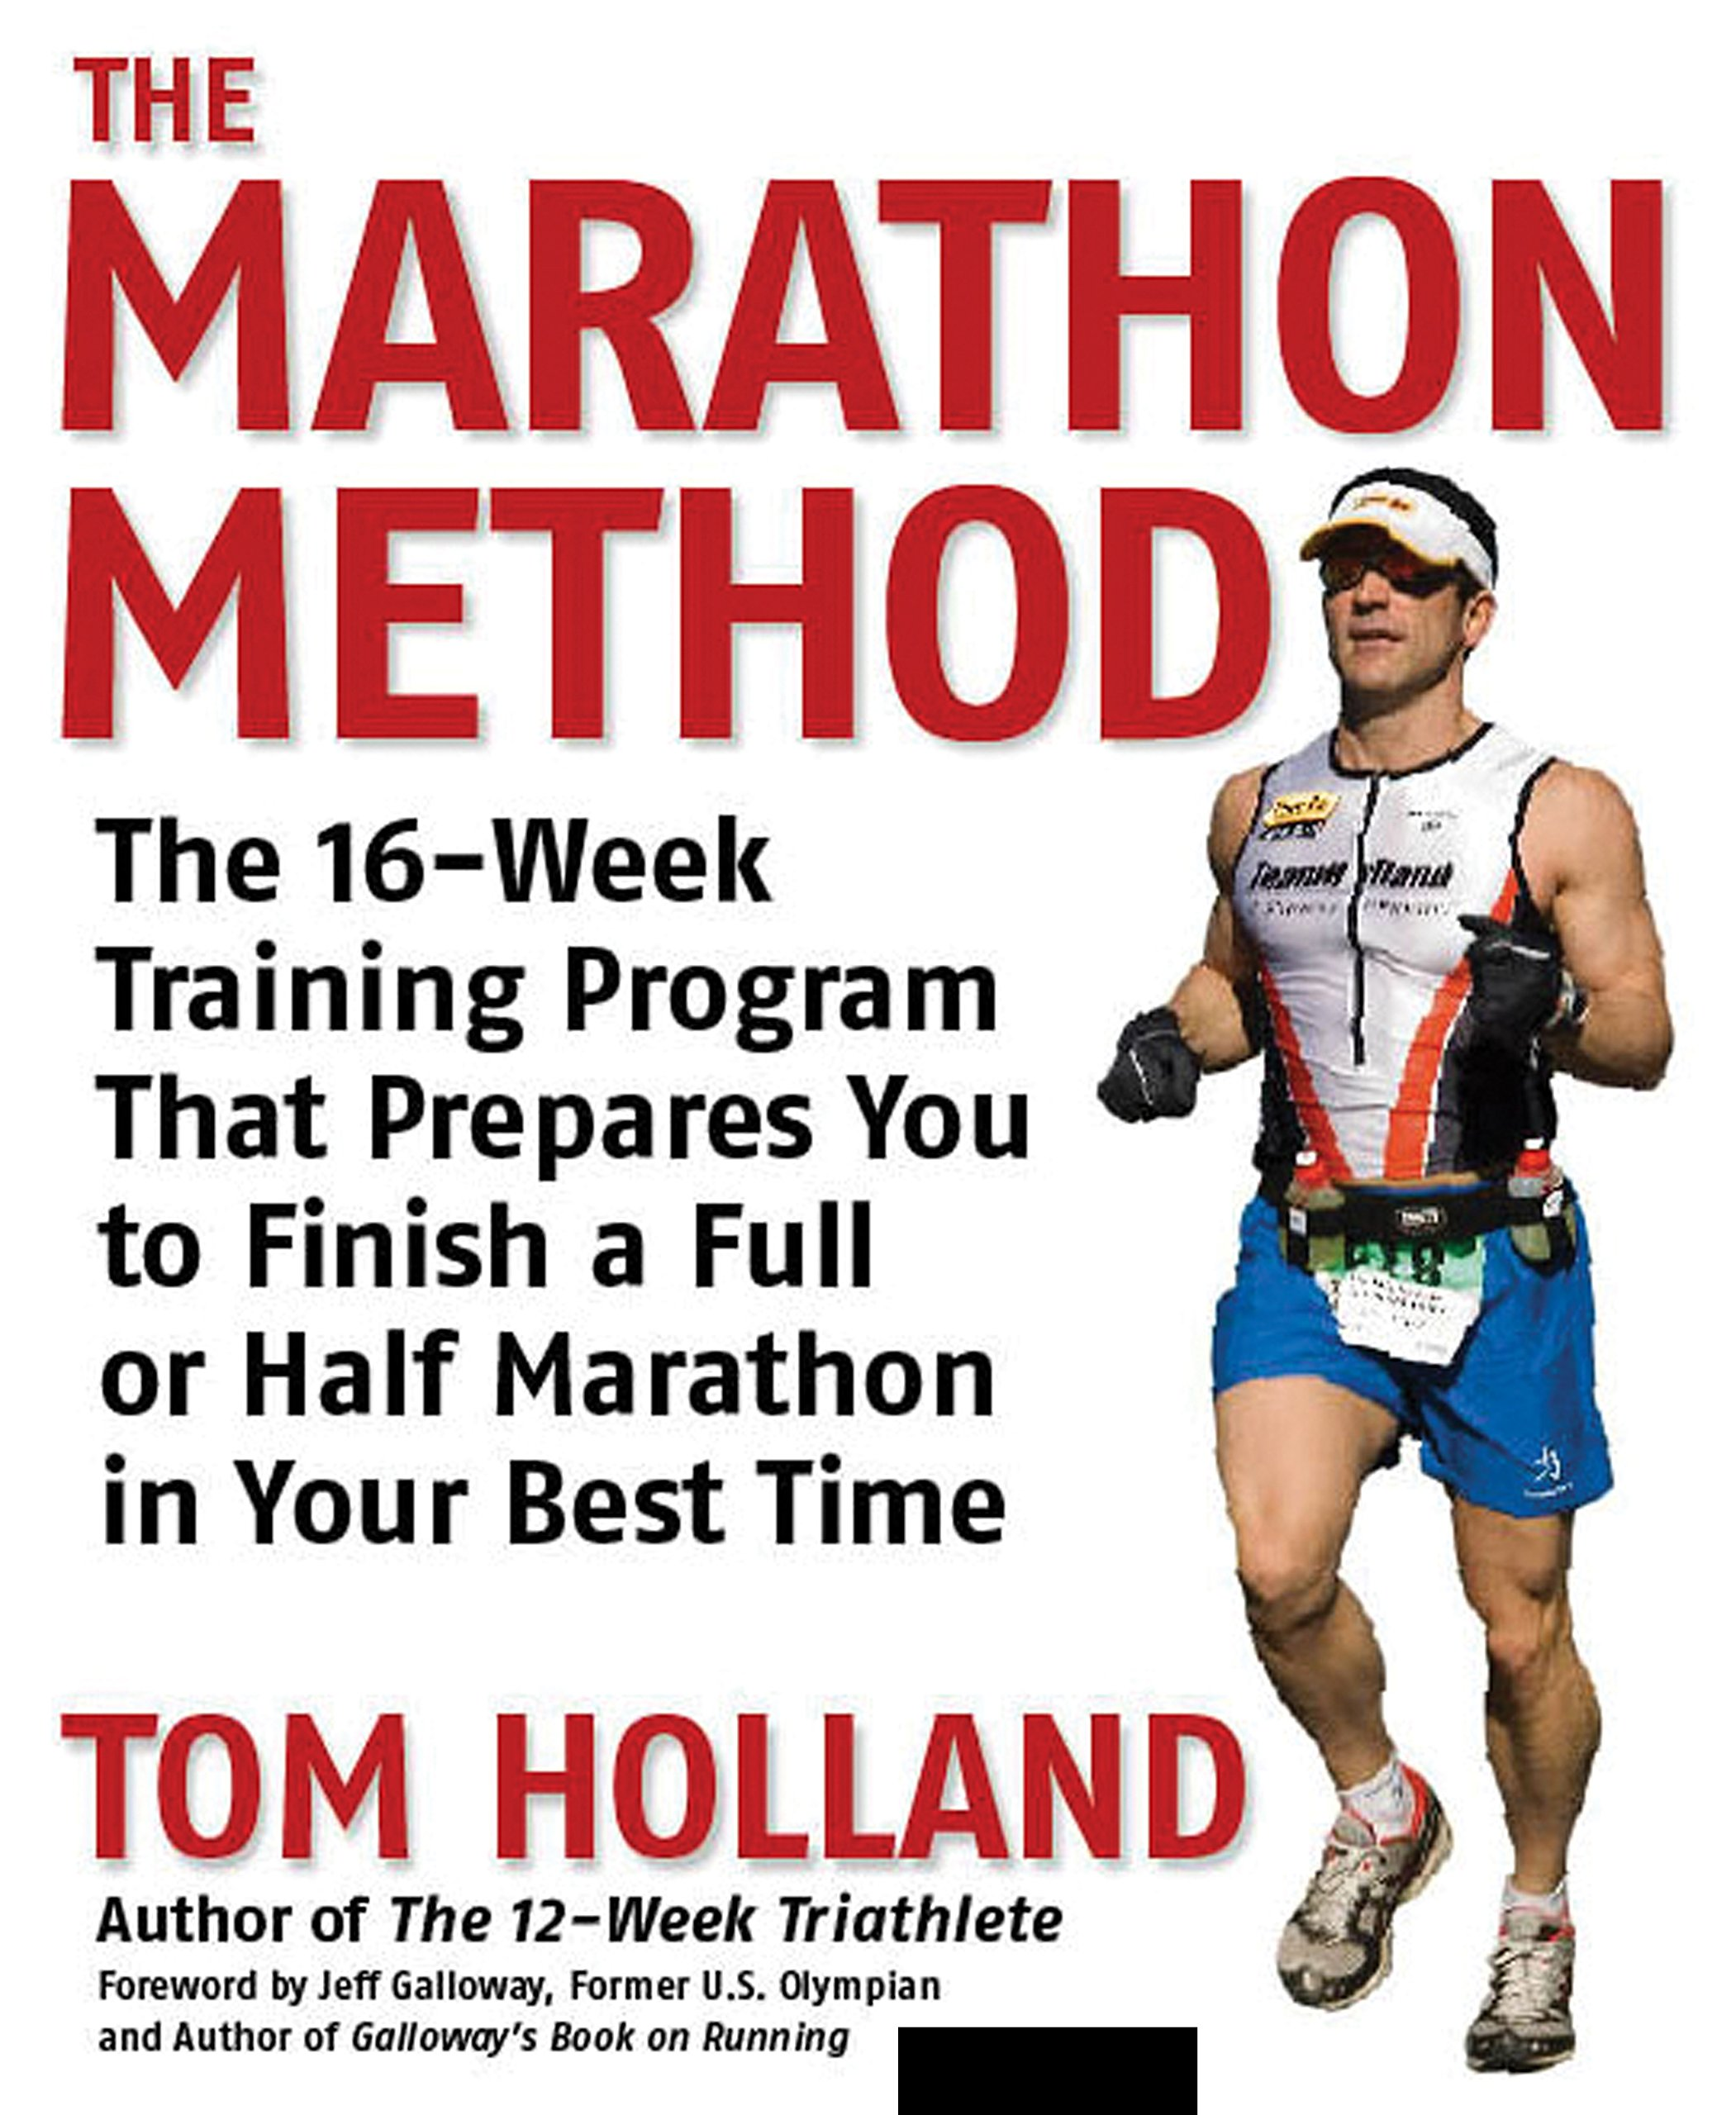 The Marathon Method: The 16-Week Training Program That Prepares You to Finish a Full or Half Marathon at Your Best Time por Tom Holland